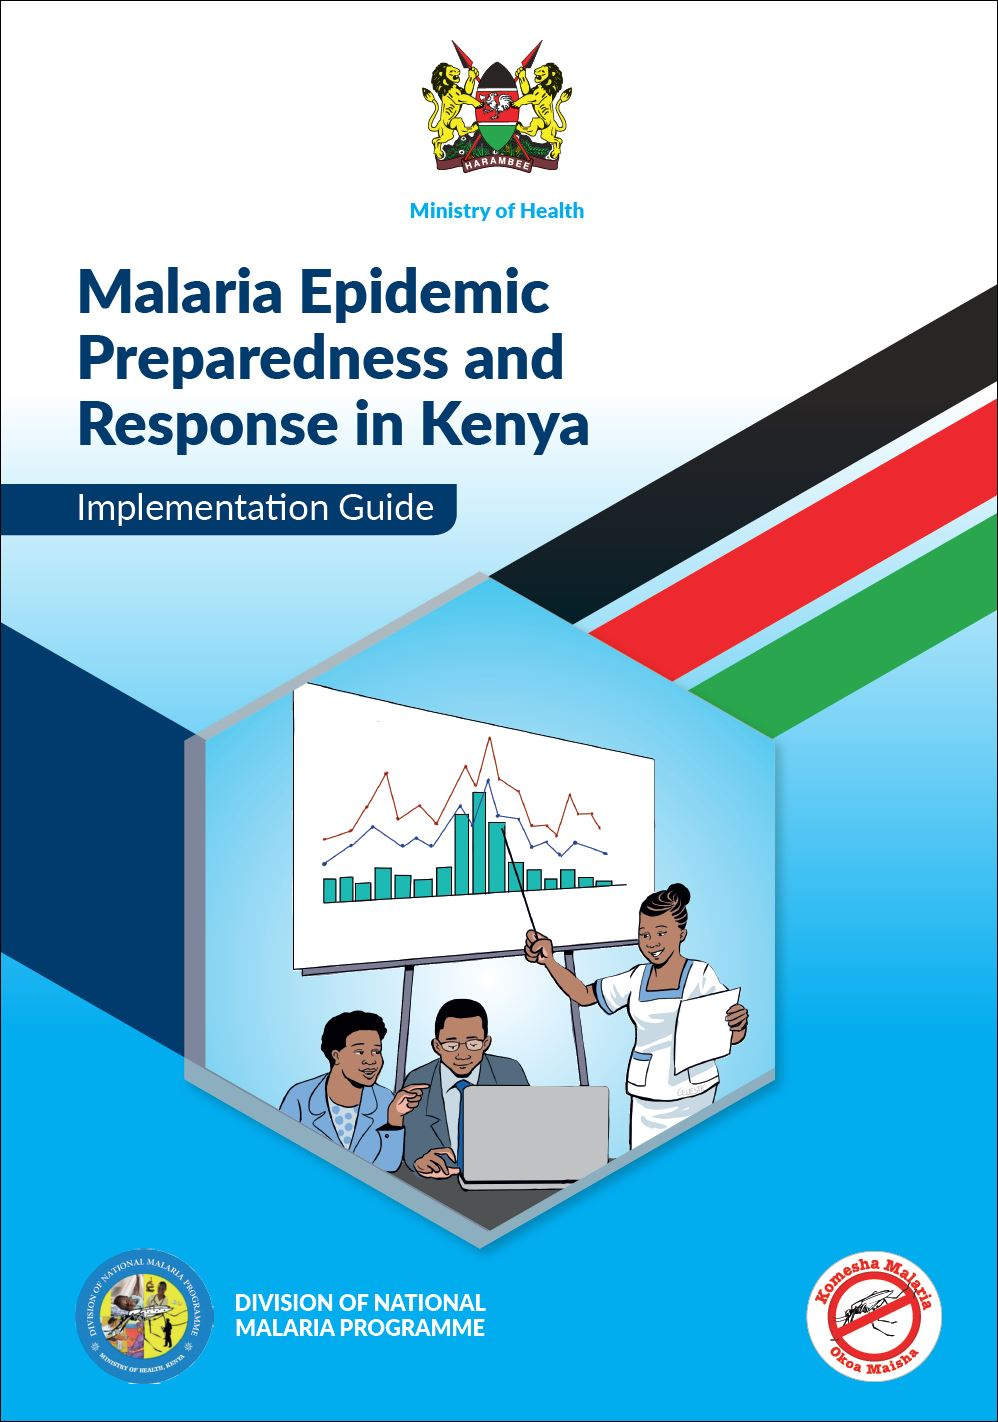 Malaria Epidemic Preparedness and Response in Kenya: Implementation Guide